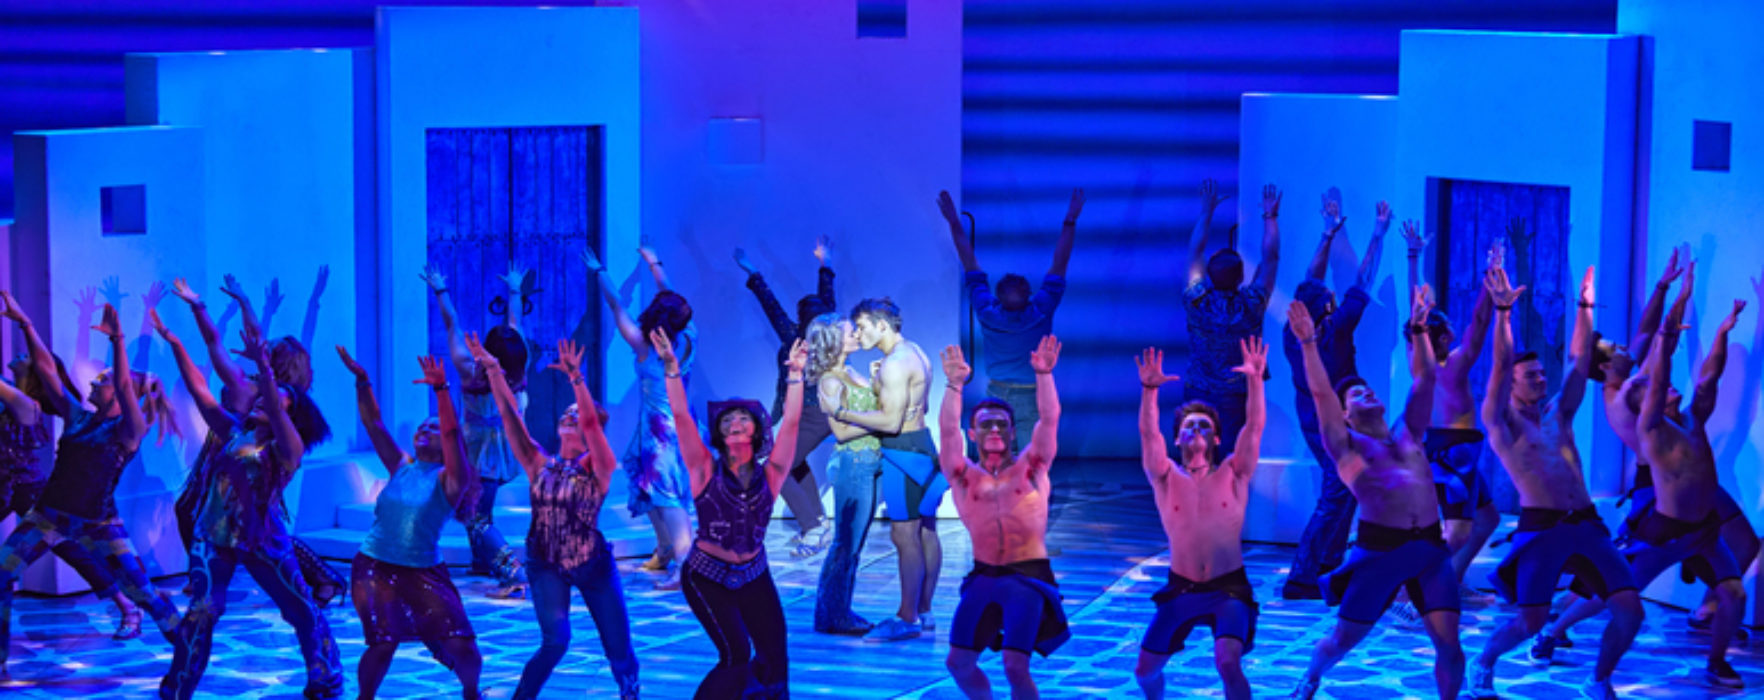 REVIEWED: Mamma Mia! Live at the Palace Theatre